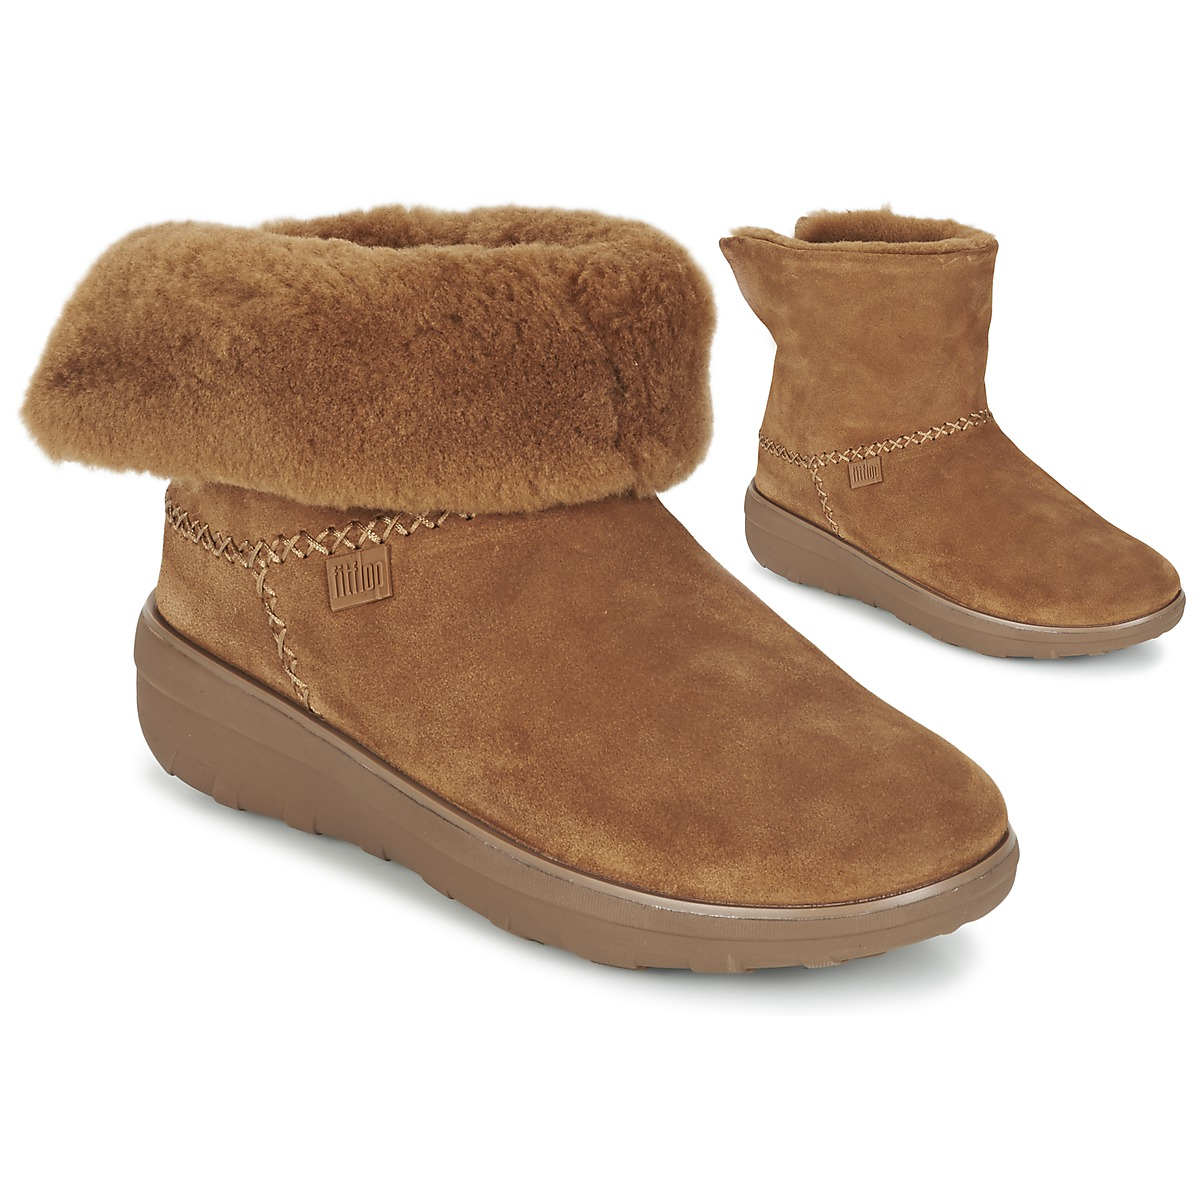 FitFlop SUPERCUSH MUKLOAFF SHORTY Noisette